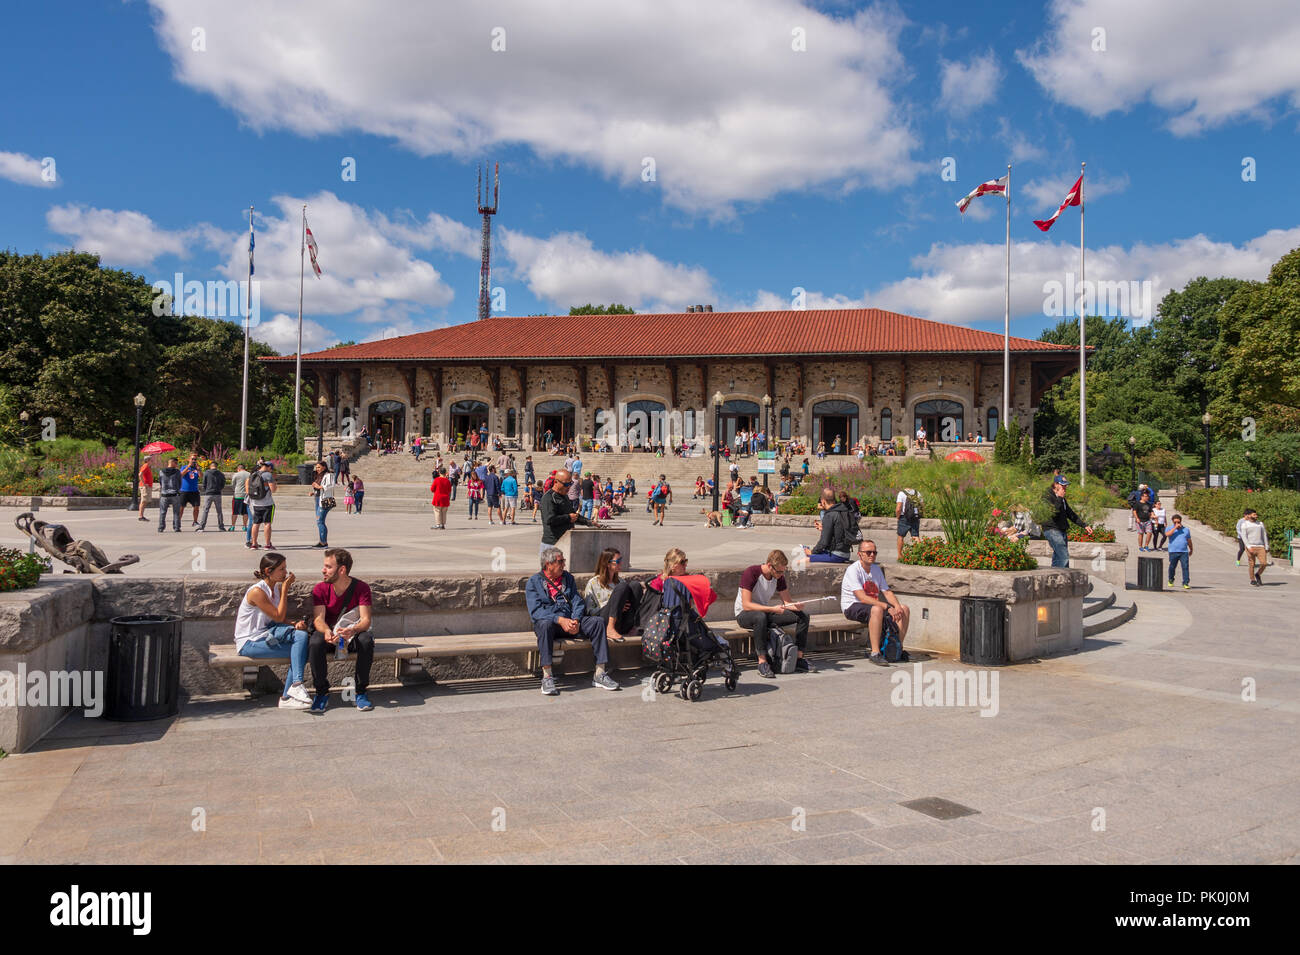 Montreal, CA - 8 September 2018: Tourists enjoy a warm summer day at the Kondiaronk Belvedere in front of the Chalet du Mont Royal. - Stock Image